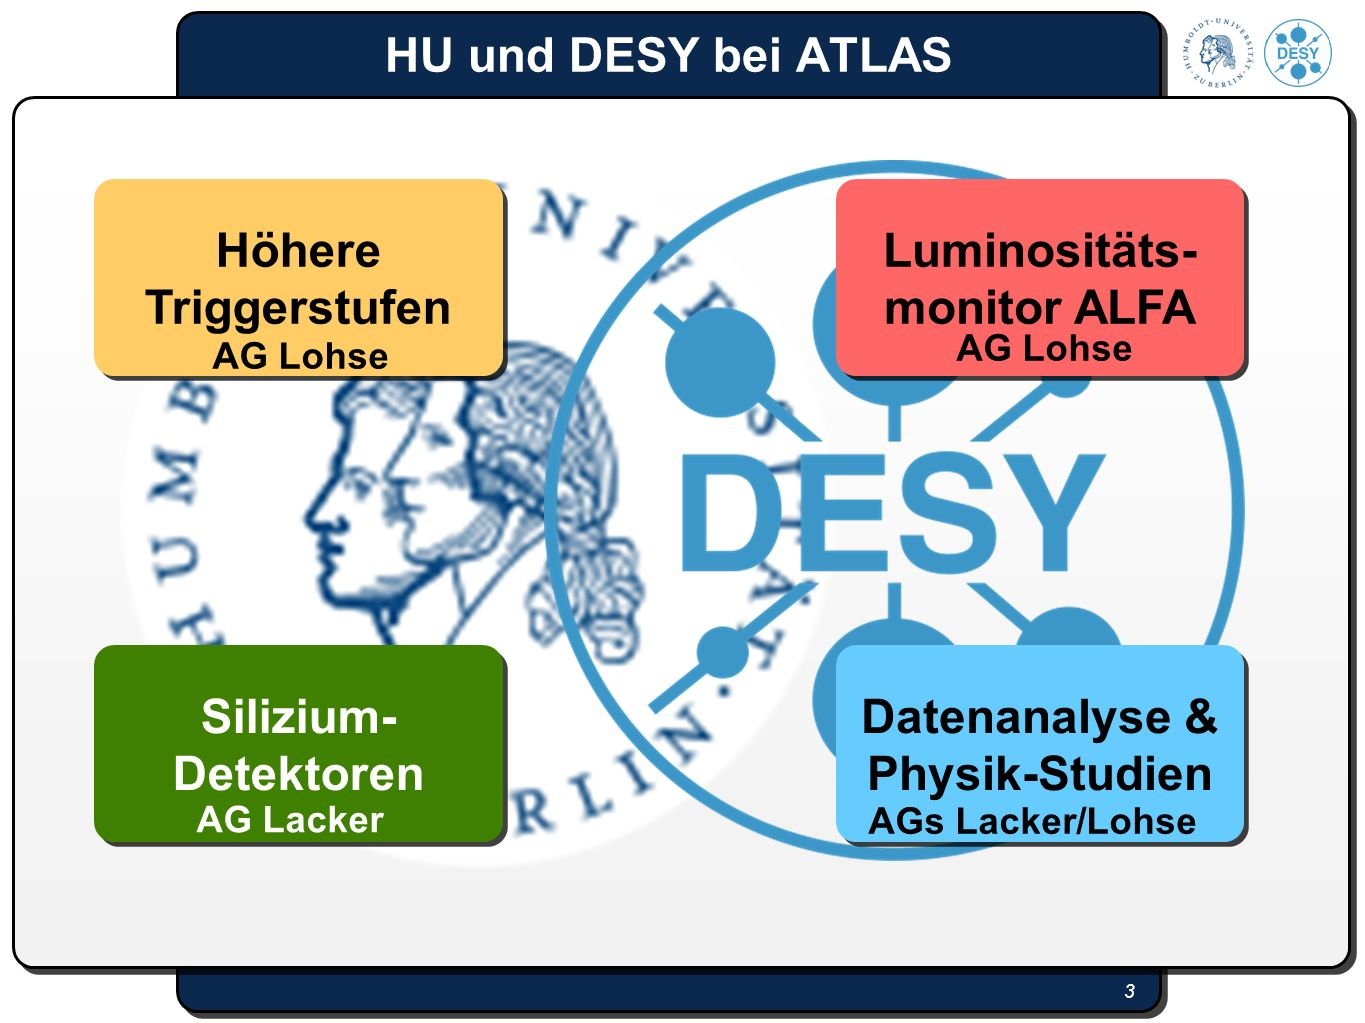 Luminositäts-monitor ALFA Datenanalyse & Physik-Studien